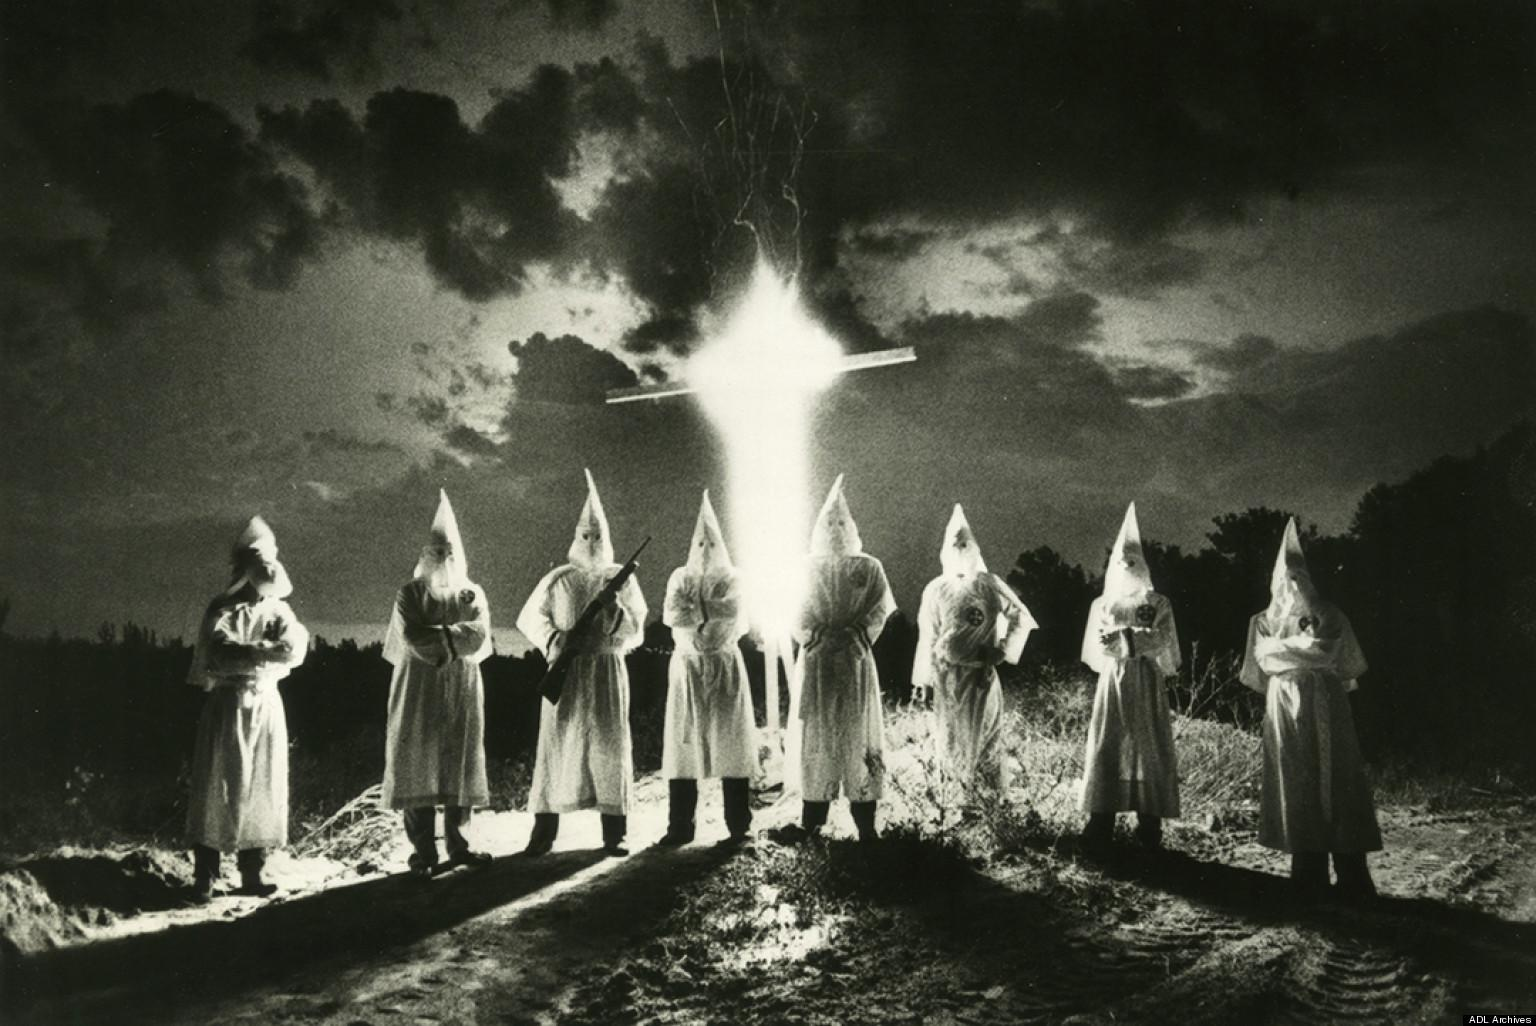 essay on the ku klux klan The first organization of the ku klux klan was organized in pulaski, tennessee during the summer of 1866 most members and leaders were former.